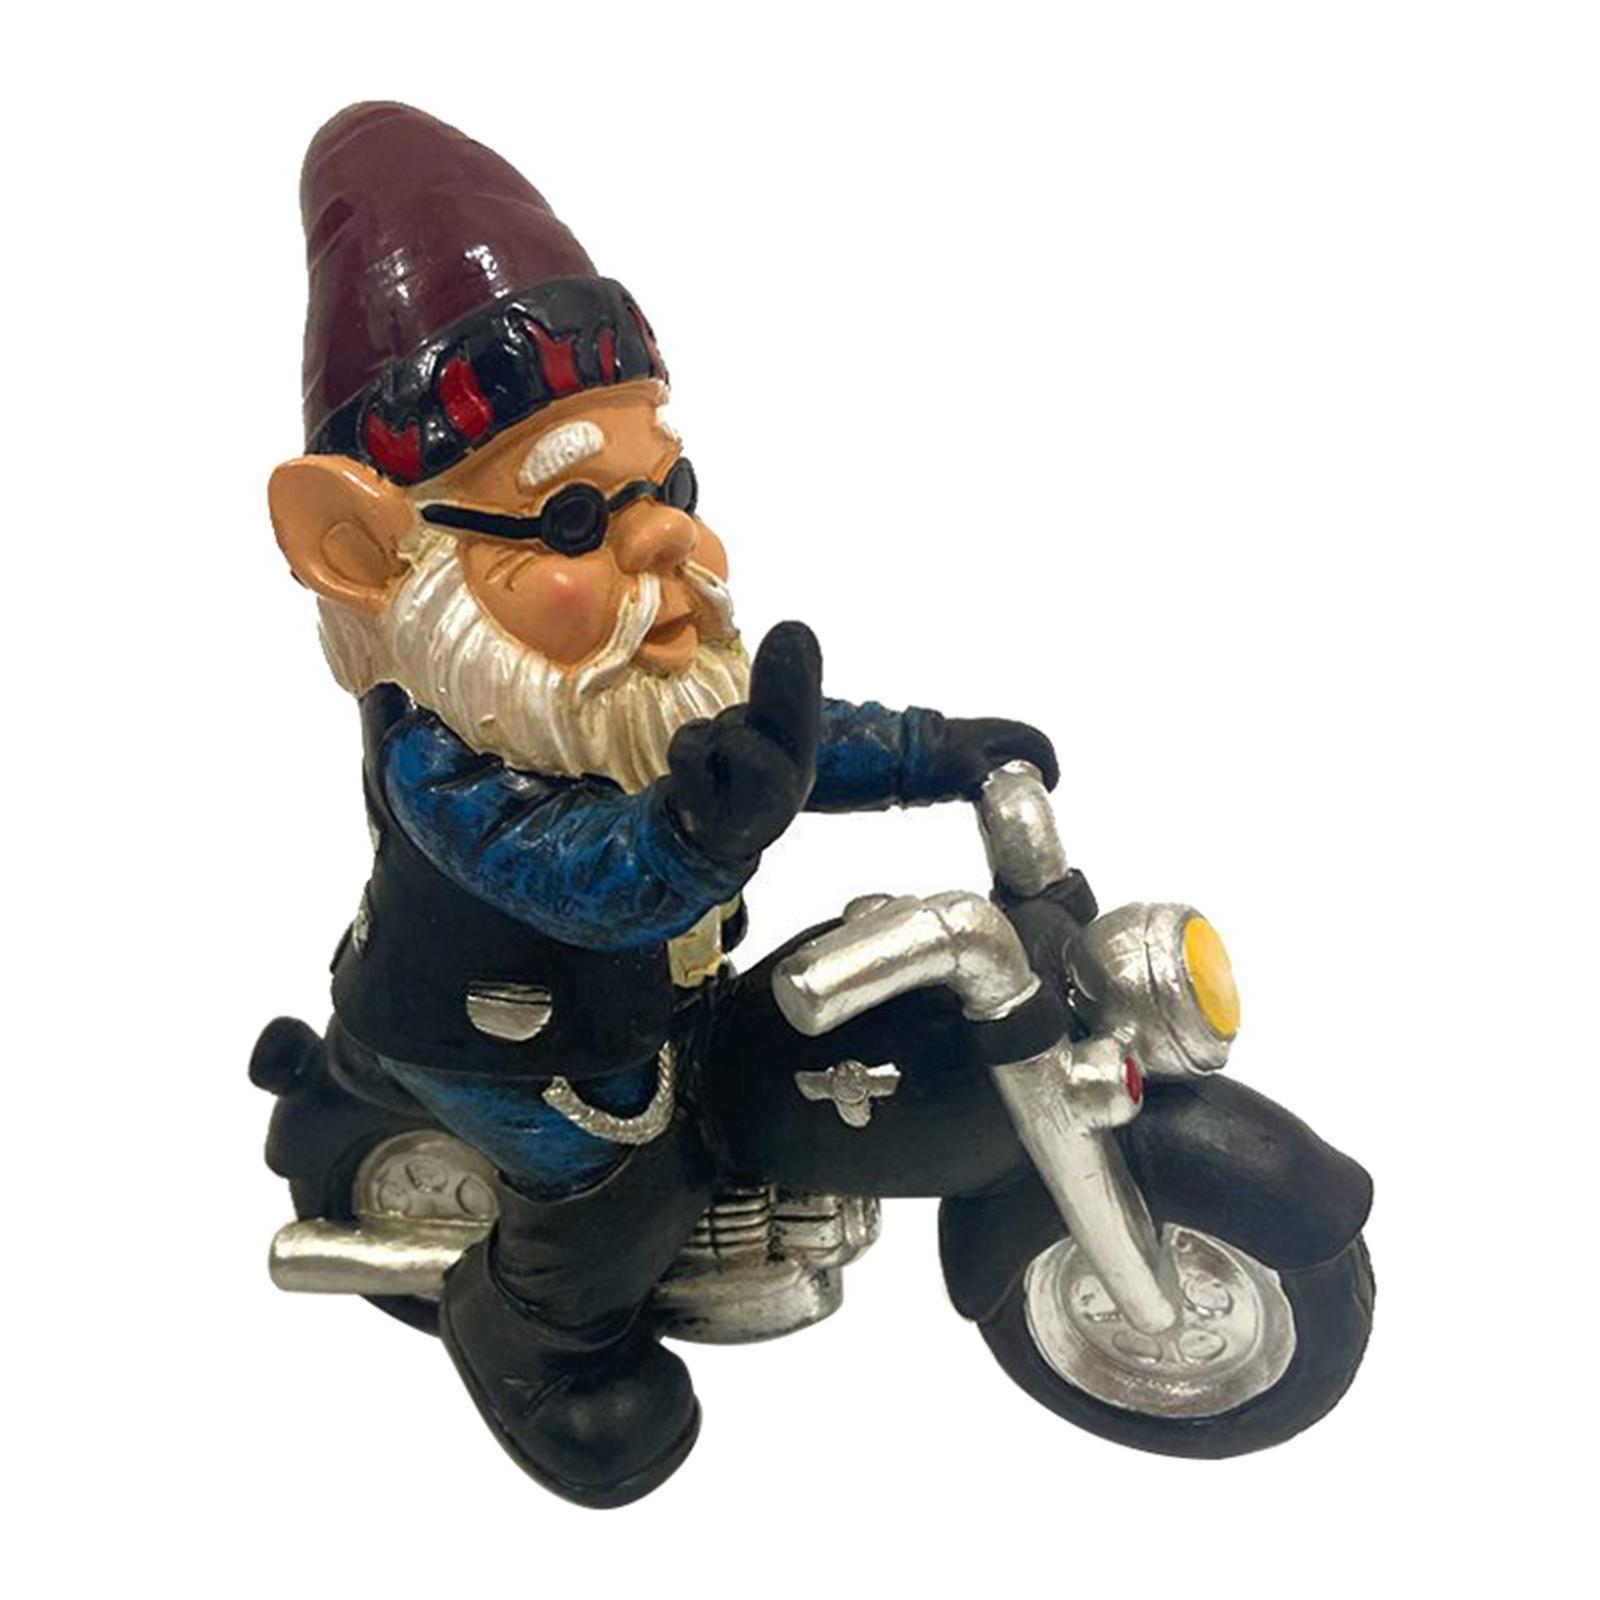 thumbnail 25 - Funny Resin Naughty Garden Gnome Statue Ornaments Villa Home Figurines